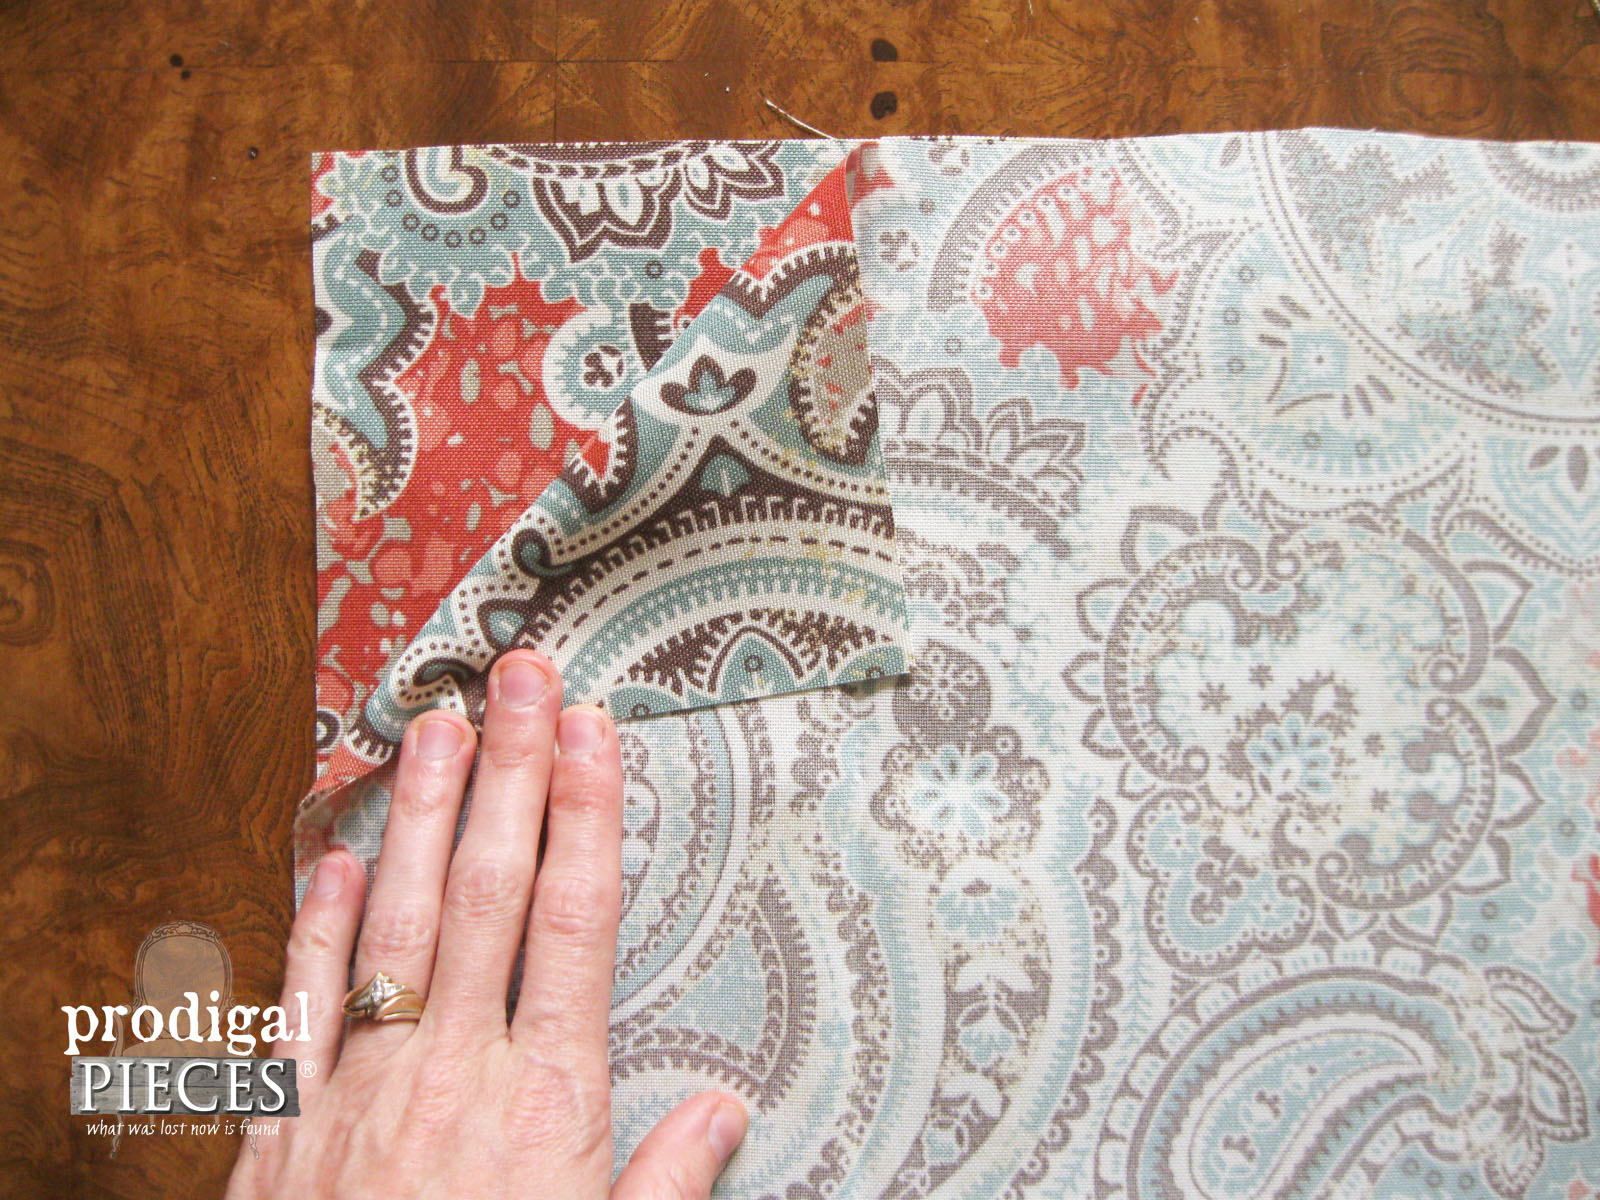 Lay Pillow Fabric Right Sides Facing Each Other | Prodigal Pieces | www.prodigalpieces.com